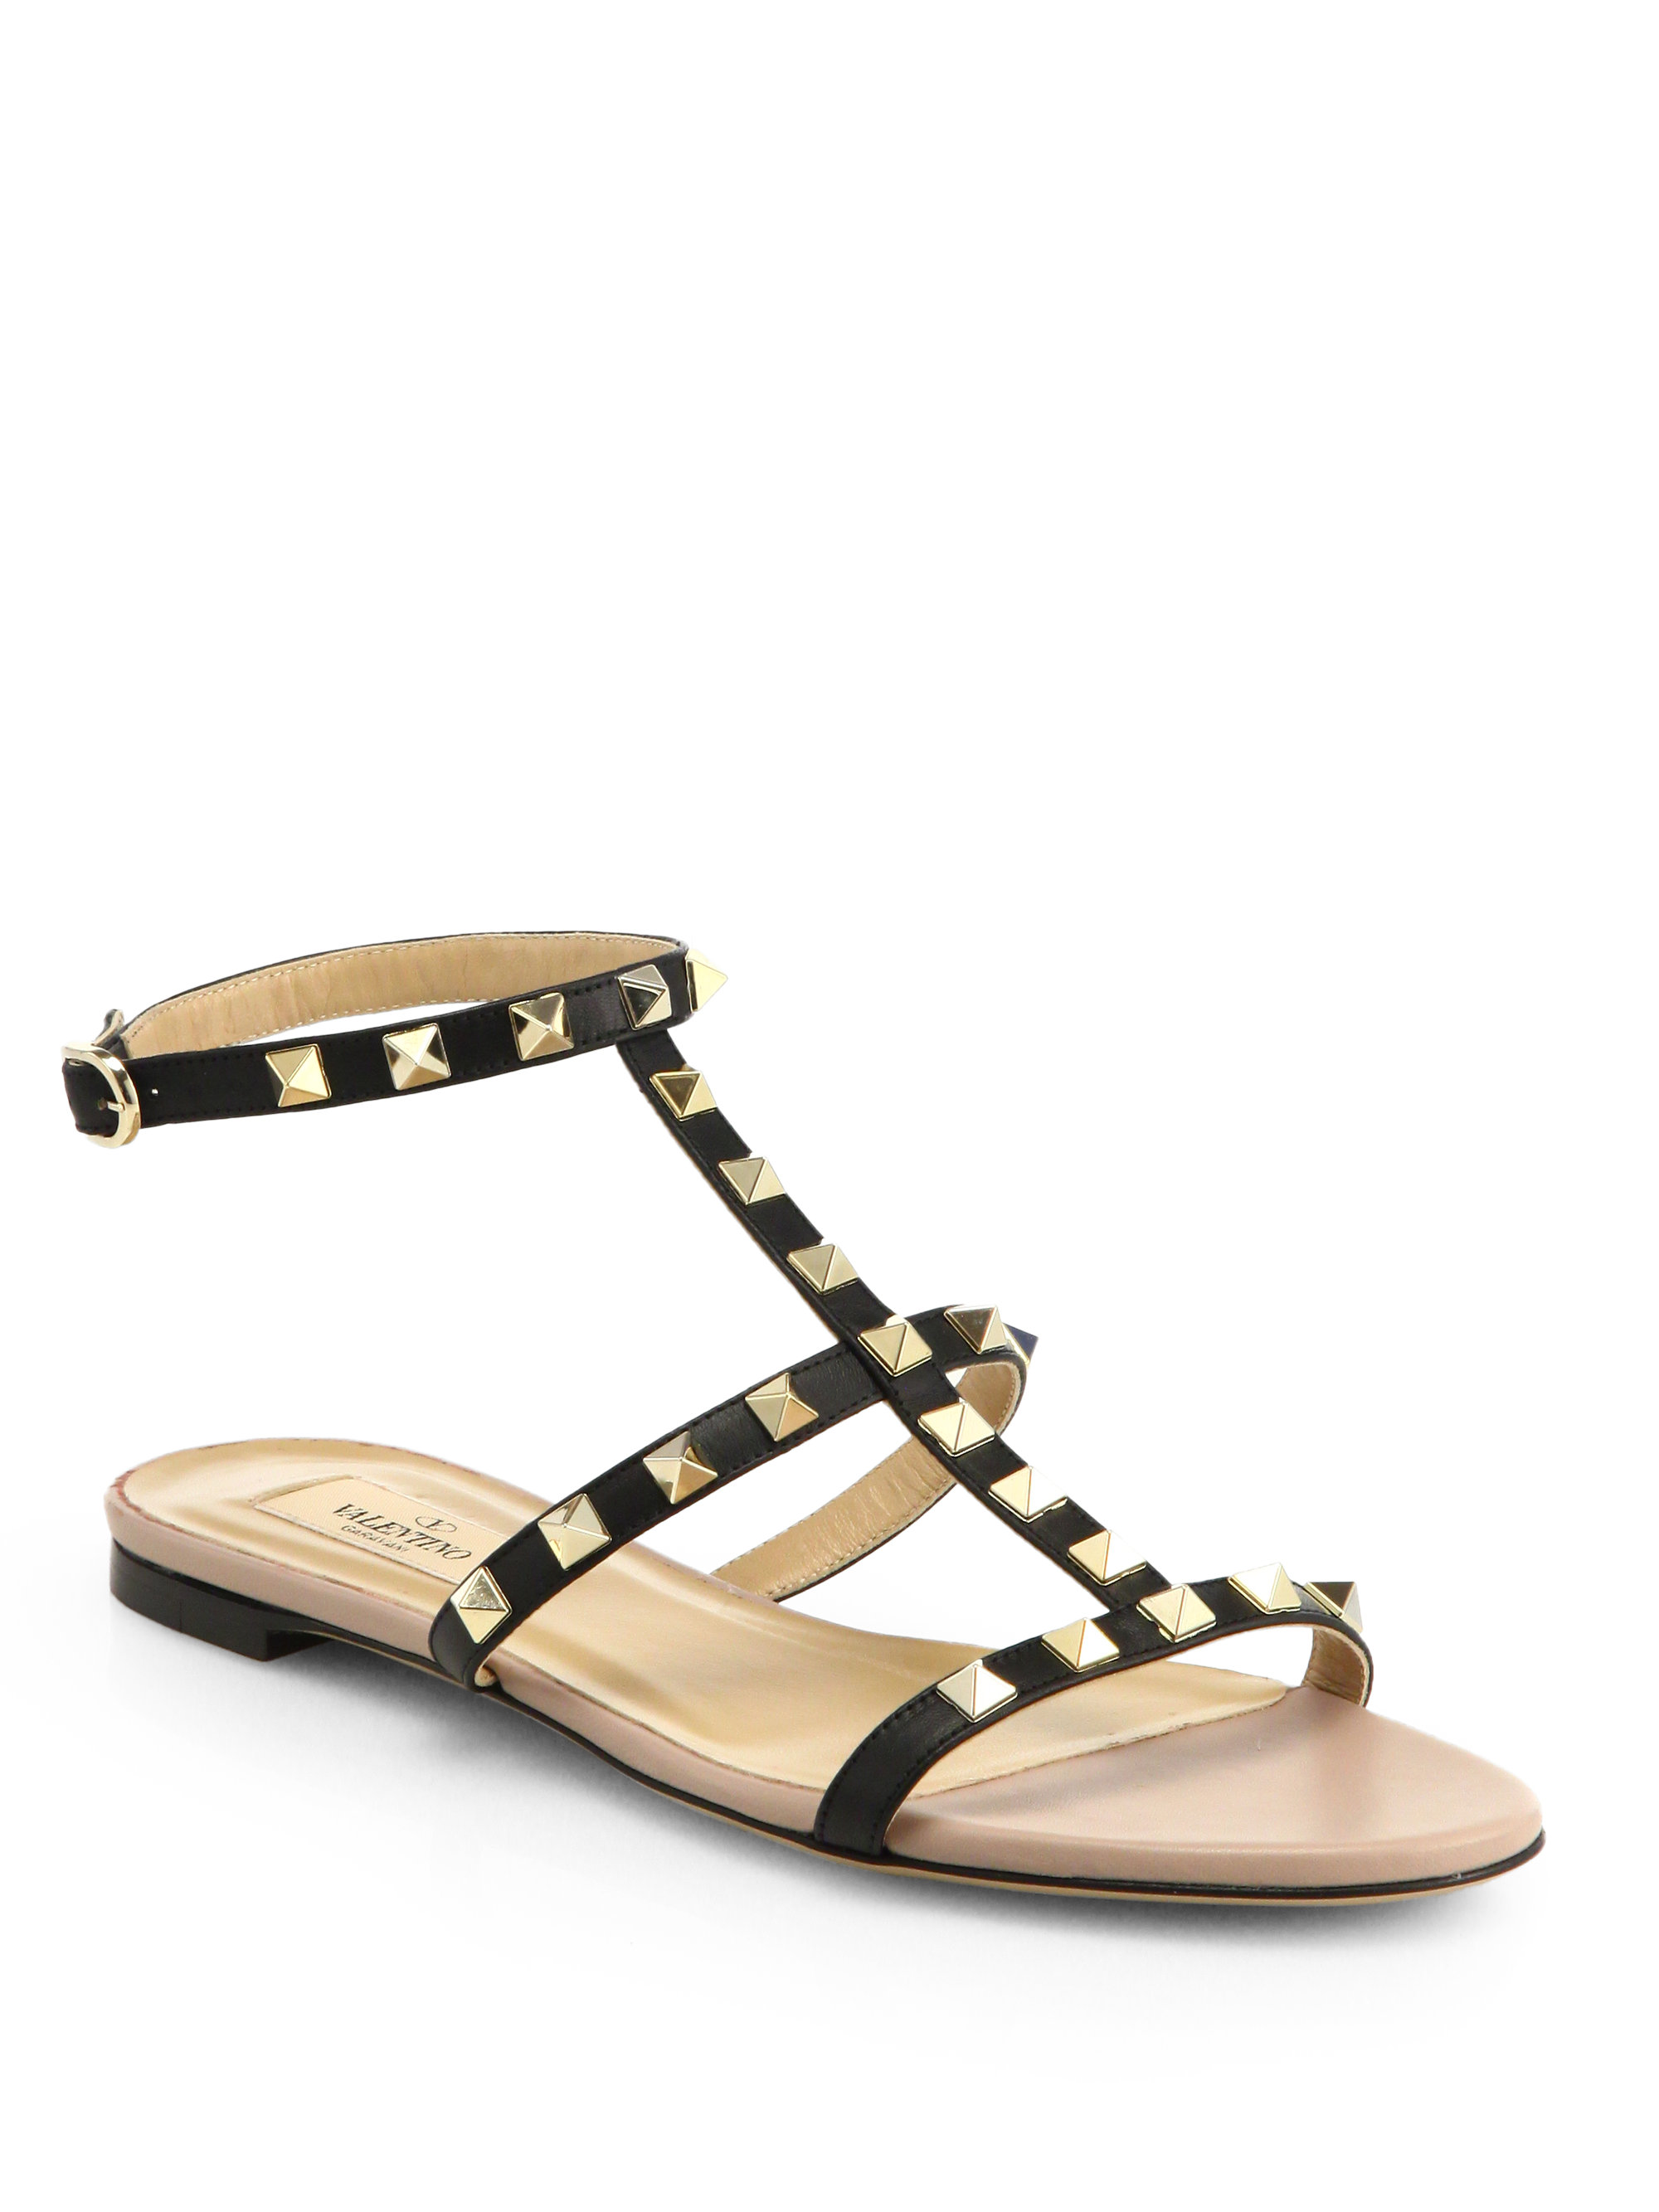 8627fb64f64 Gallery. Previously sold at  Saks Fifth Avenue · Women s Gladiator Sandals  Women s Valentino ...